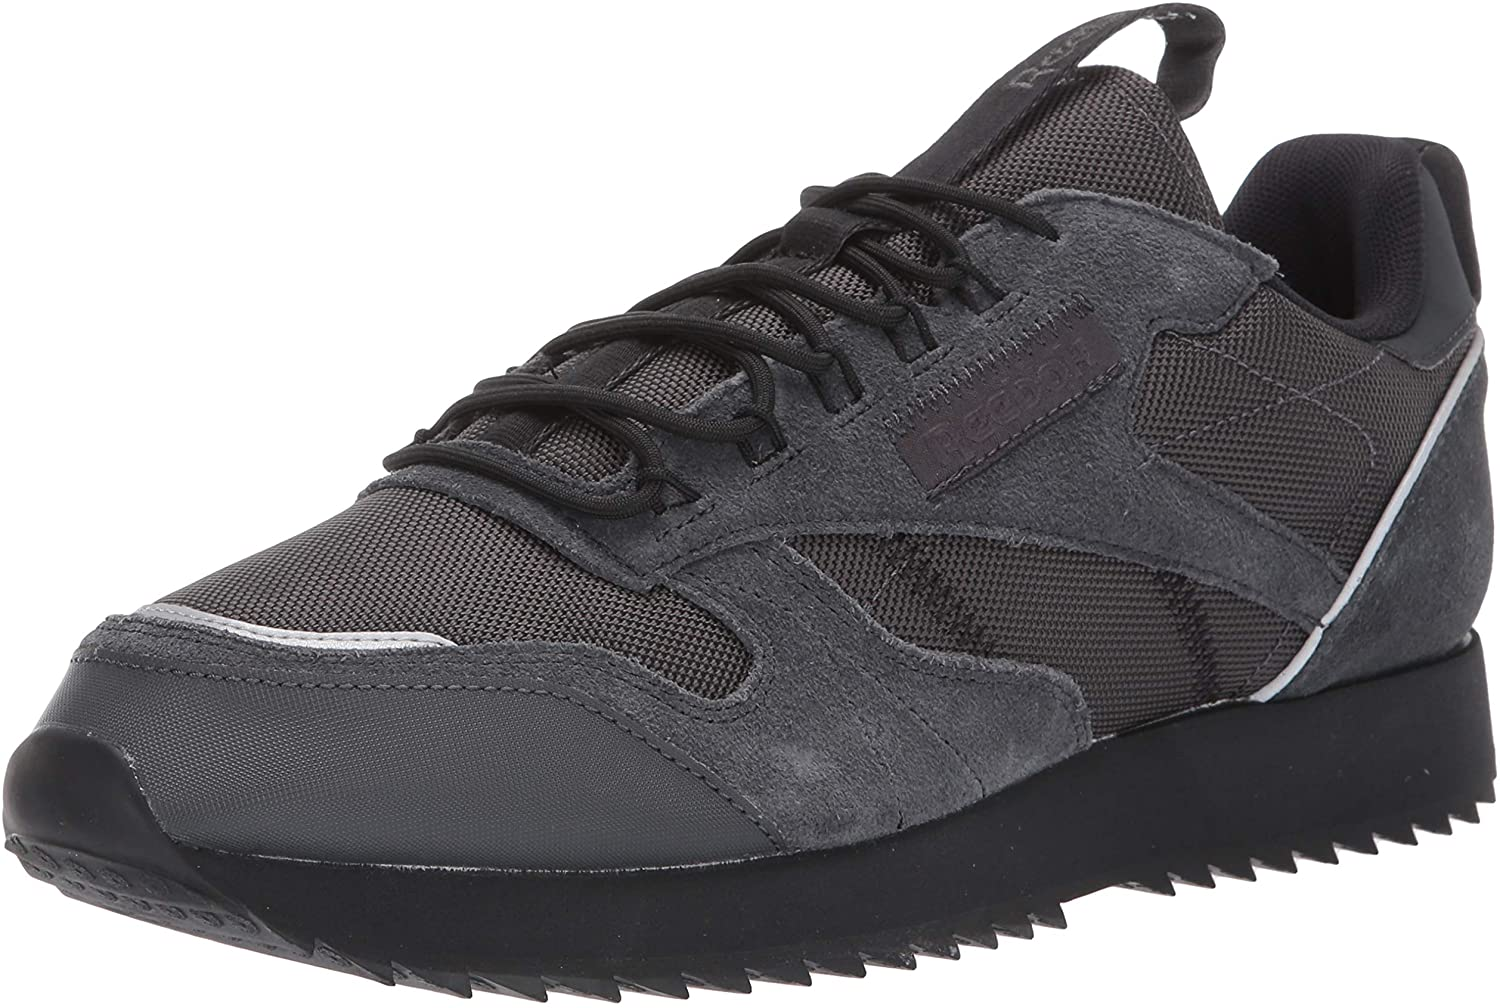 Reebok Men s Classic Leather Sneaker, Grey Black Panton, 9.5 M US